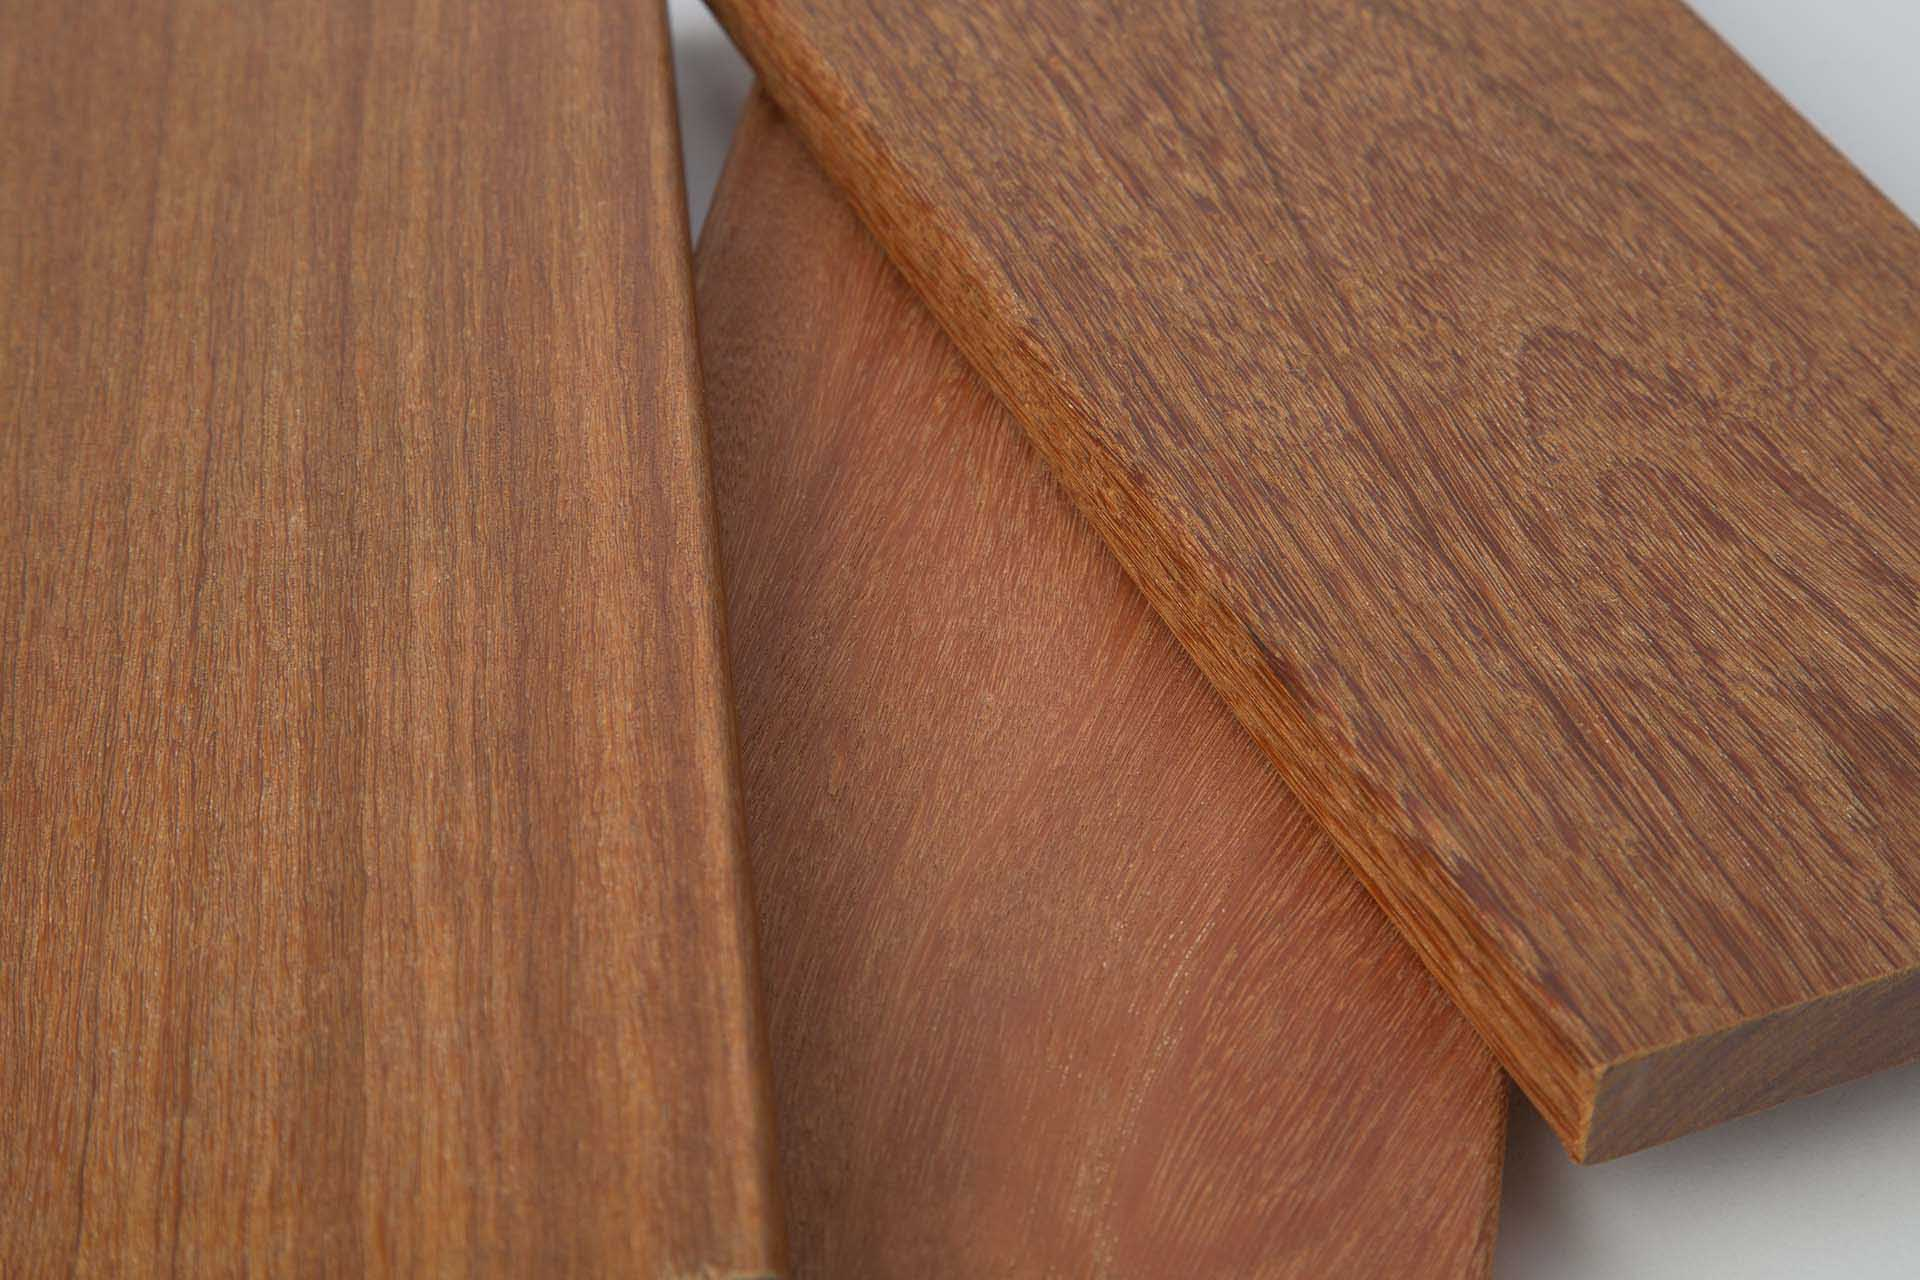 Cumaru Decking 1x6 Boards Close Up.jpg